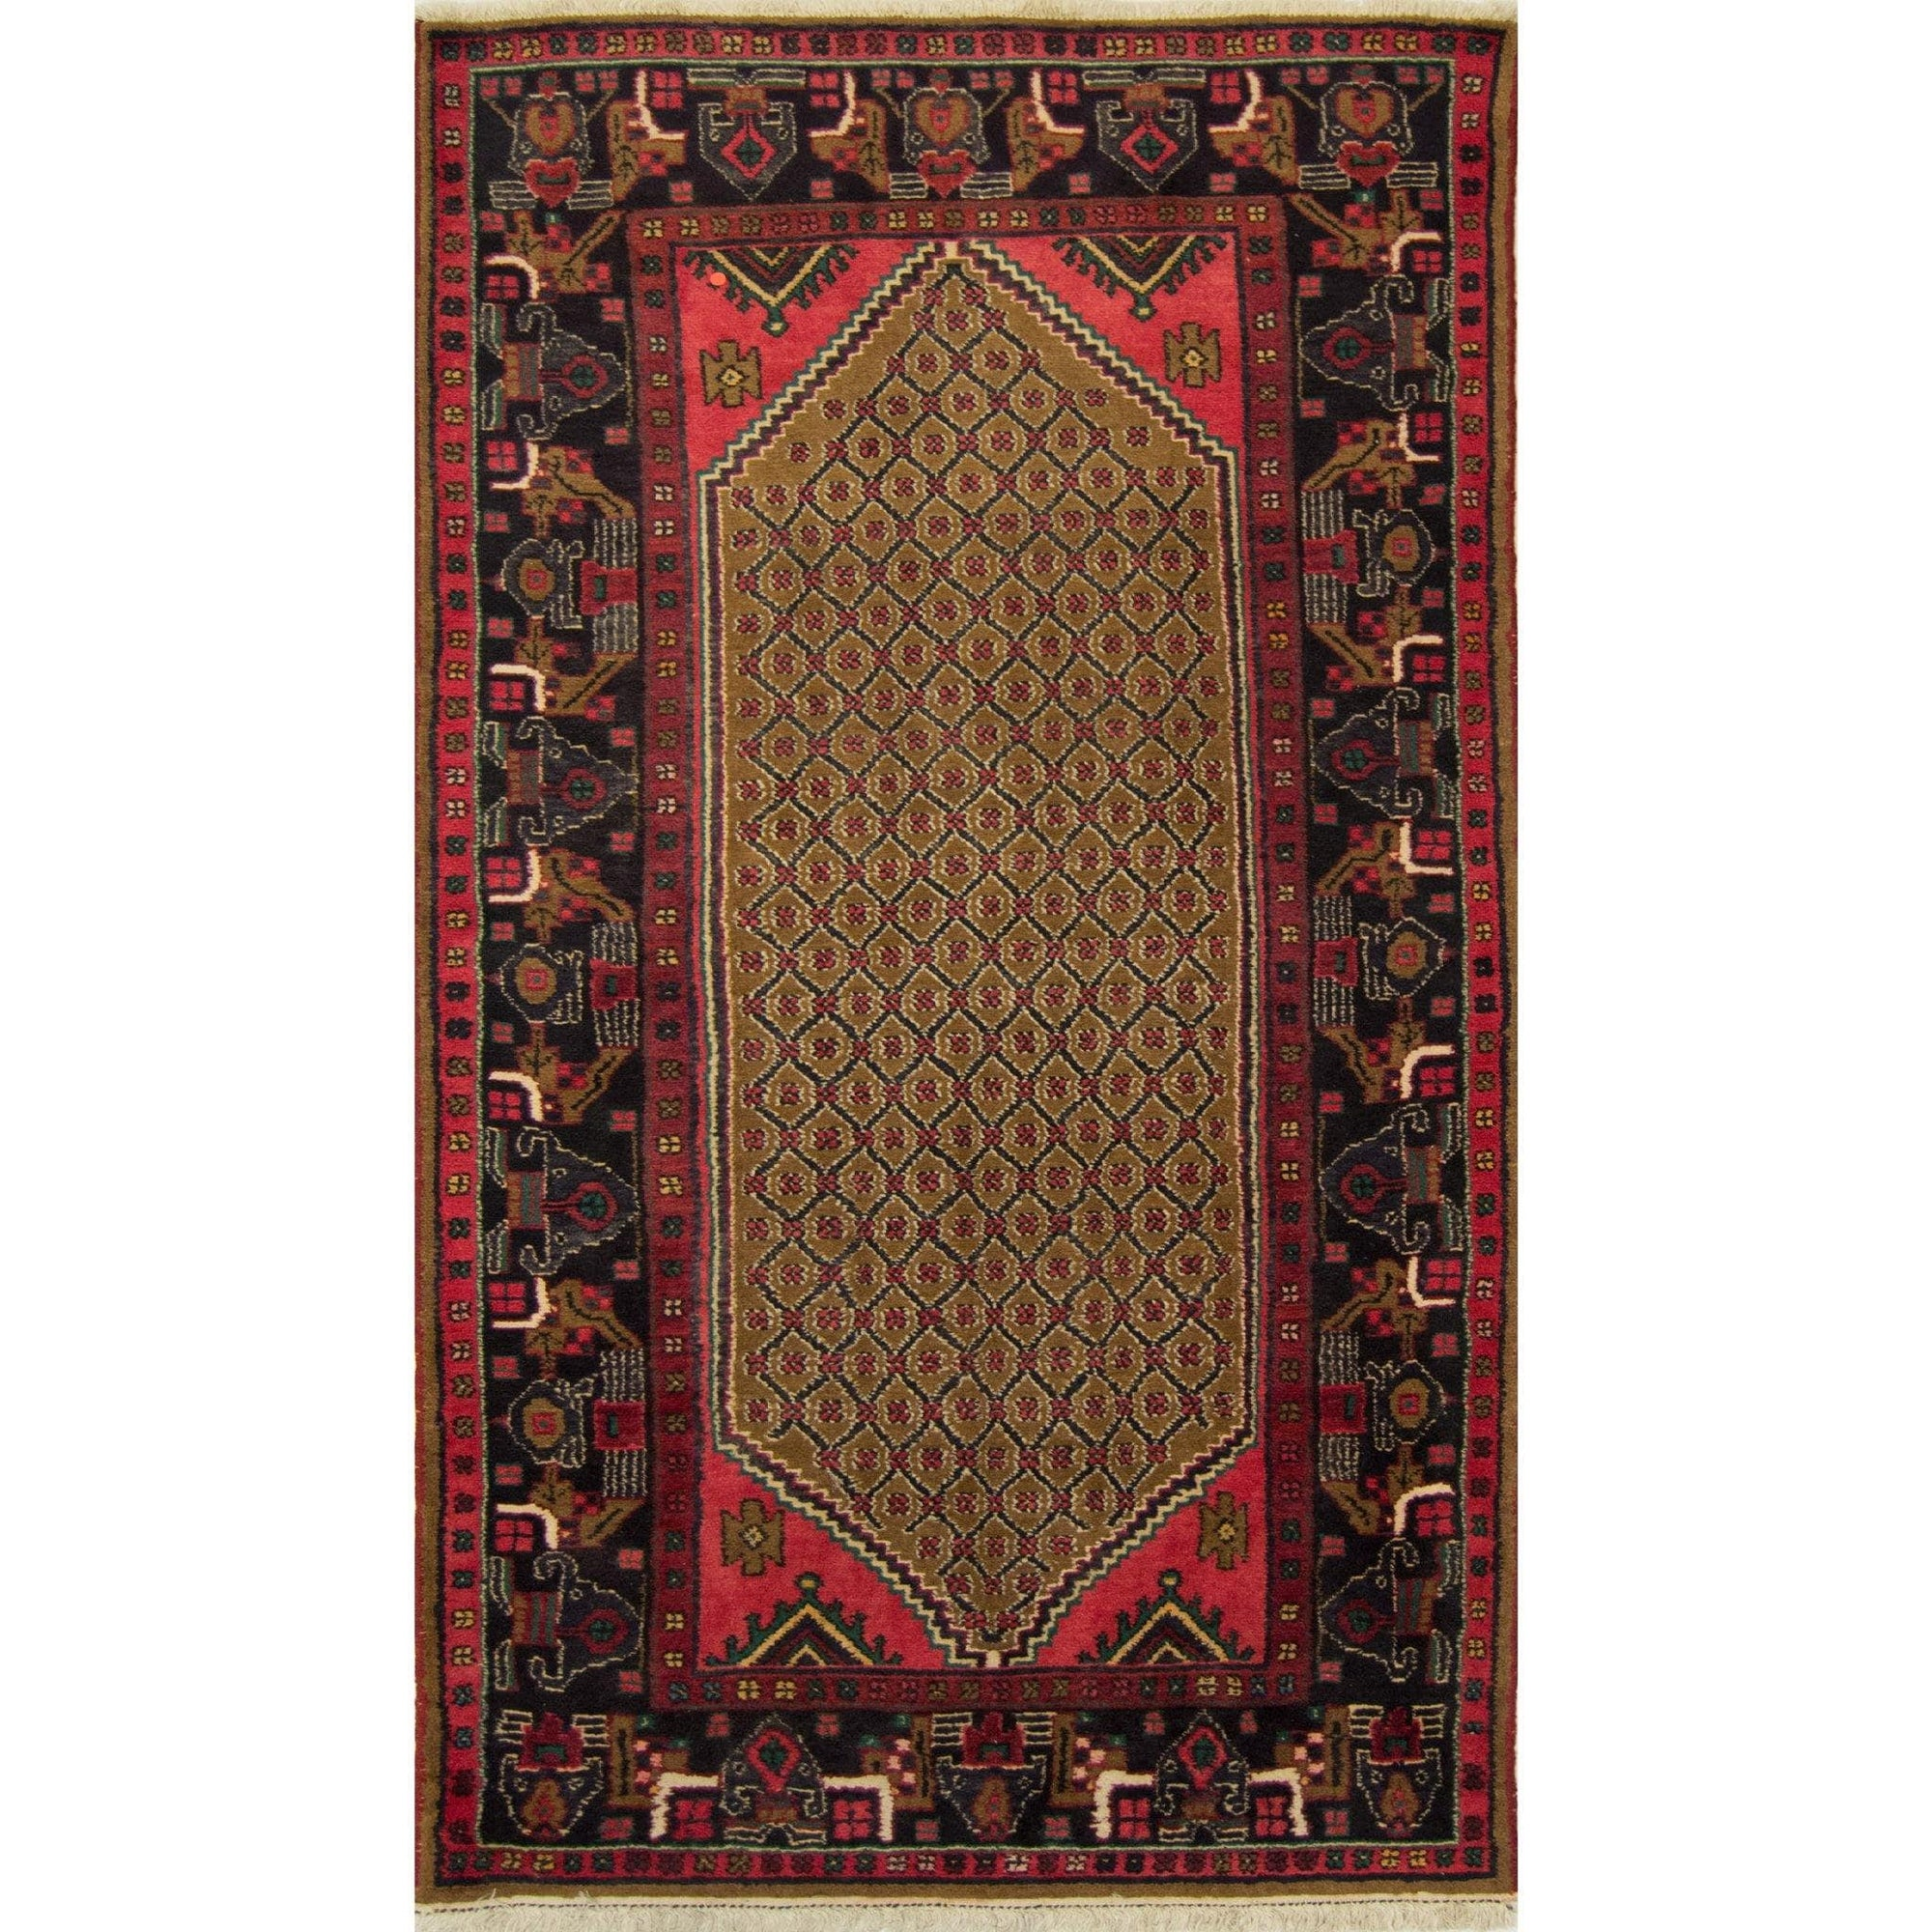 Hand-knotted Tribal Persian Wool Koliai Rug 123cm x 250cm Persian-Rug | House-of-Haghi | NewMarket | Auckland | NZ | Handmade Persian Rugs | Hand Knotted Persian Rugs